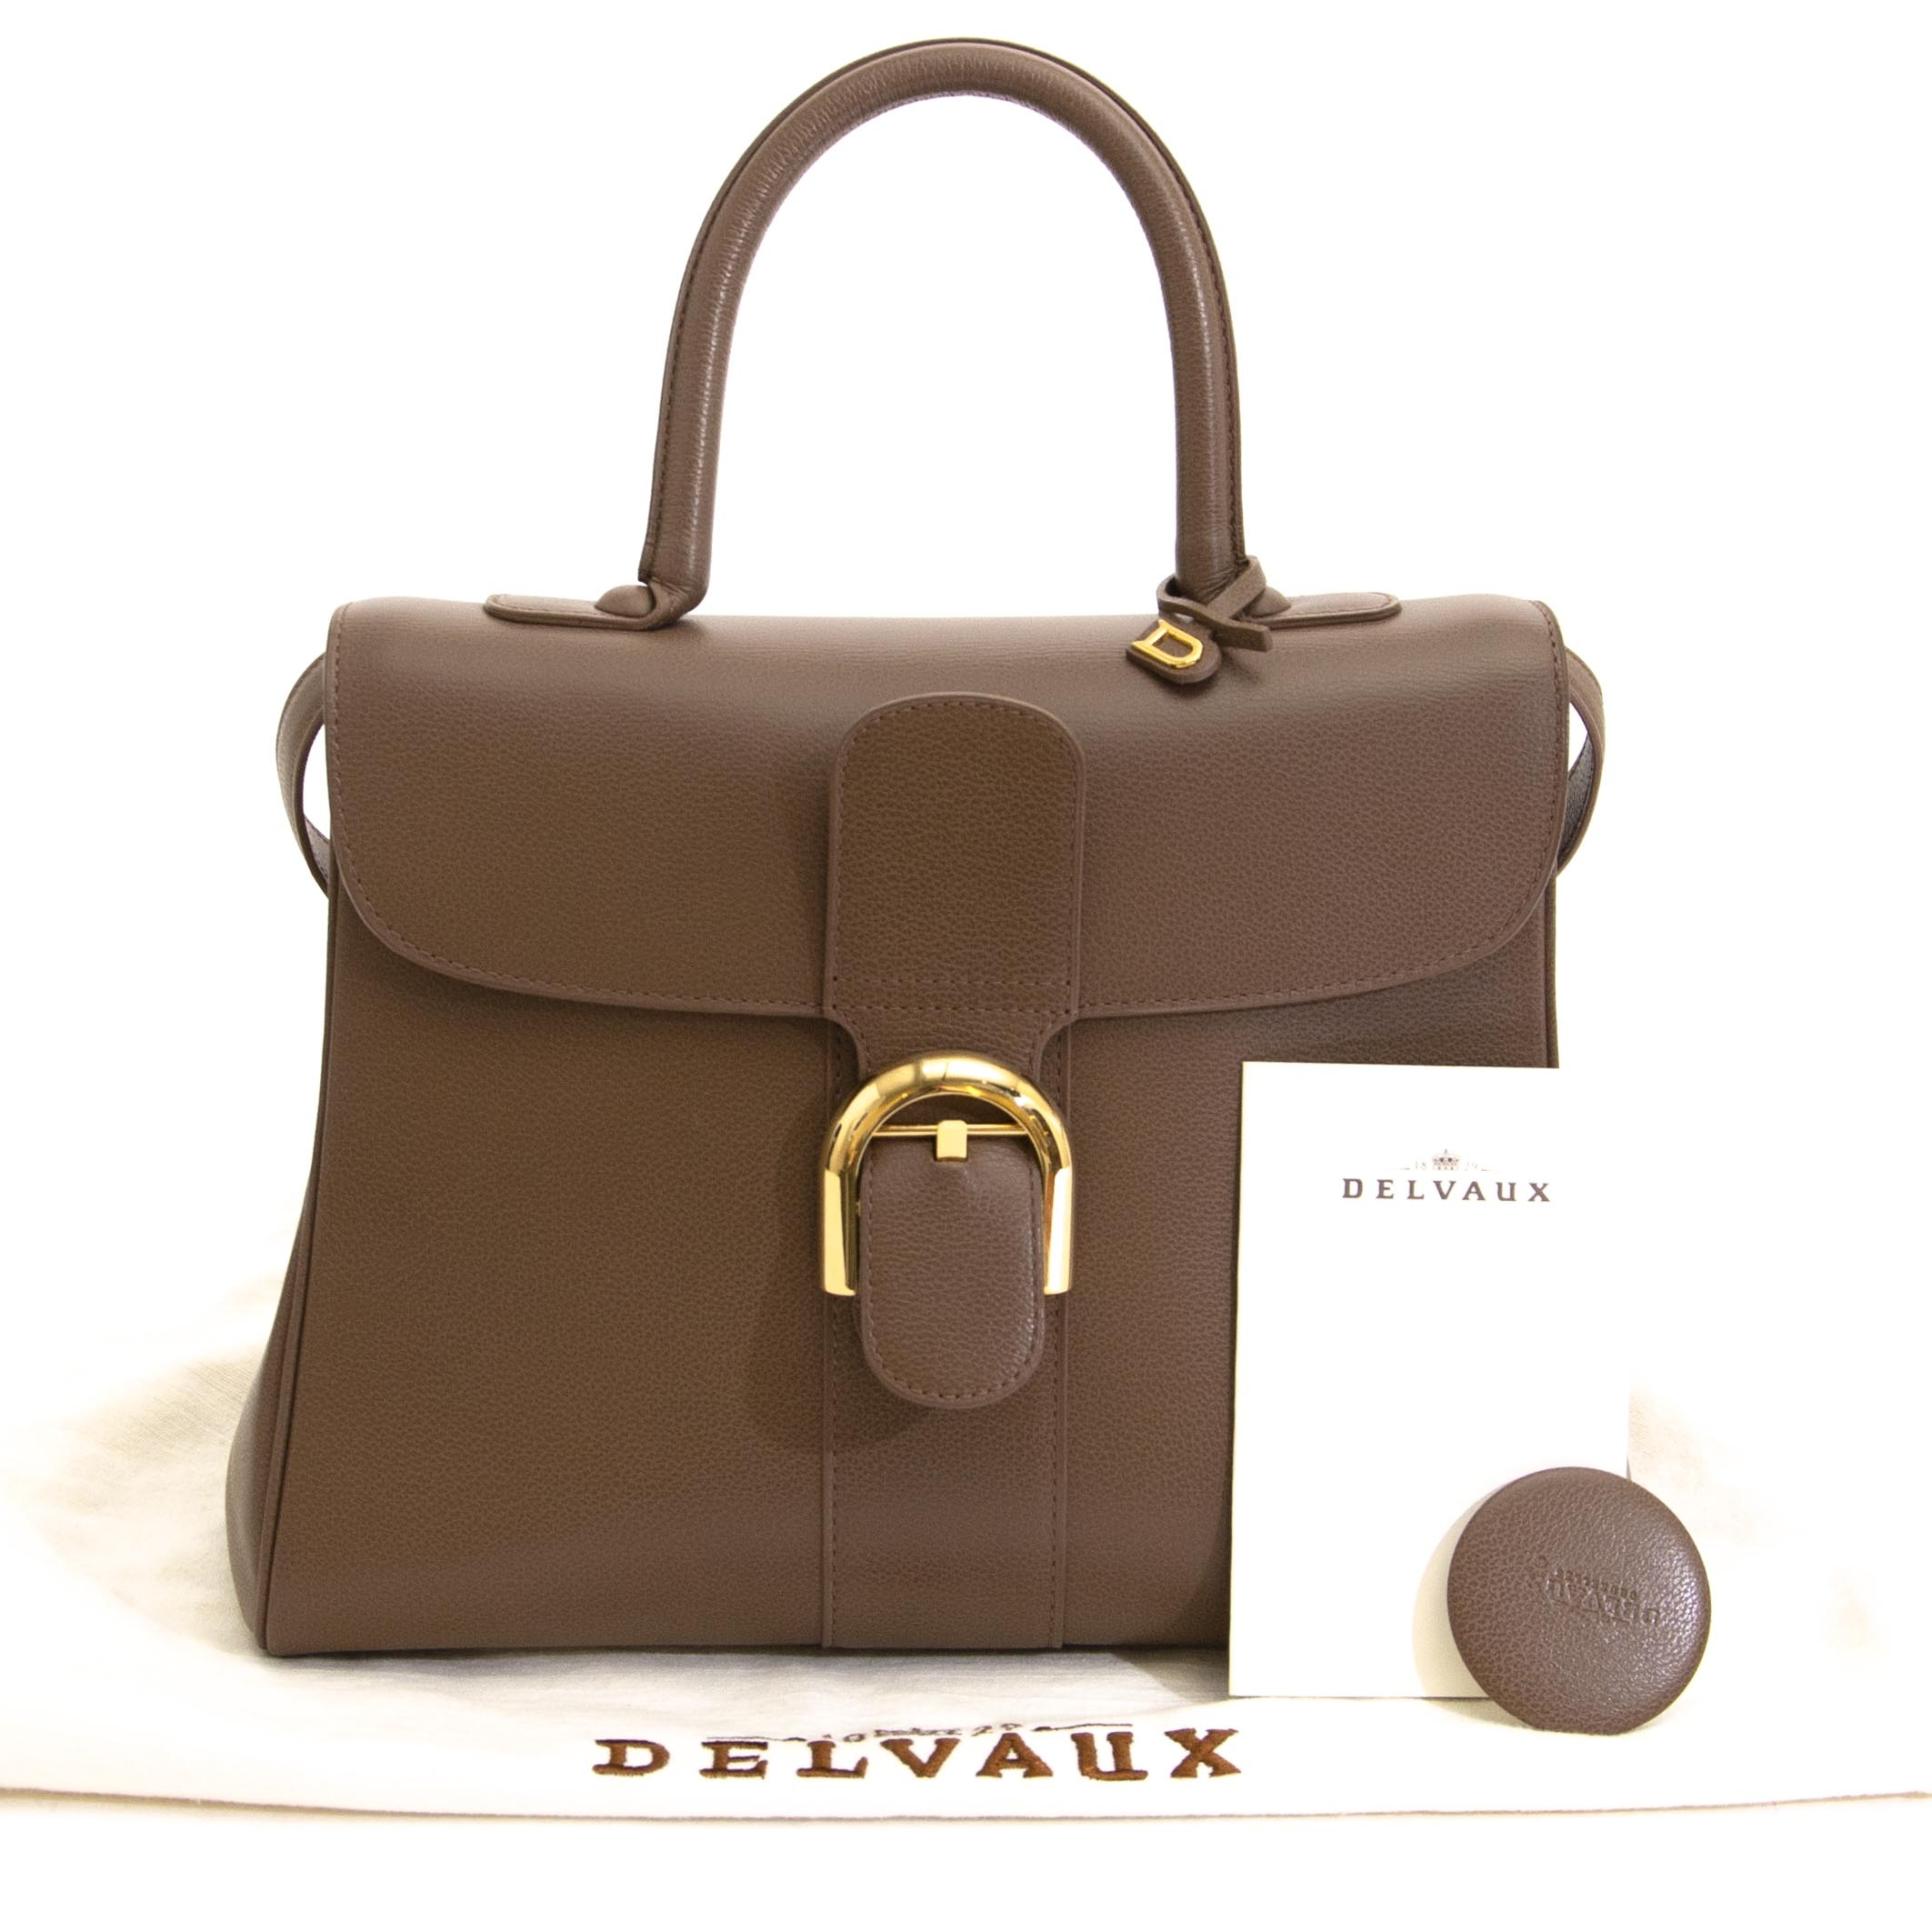 8312c65a67ce Delvaux Brillant MM Jumping Taupe for sale at Labellov secondhand luxury in  Antwerp Delvaux Brillant MM Jumping Taupe te koop bij Labellov tweedehands  luxe